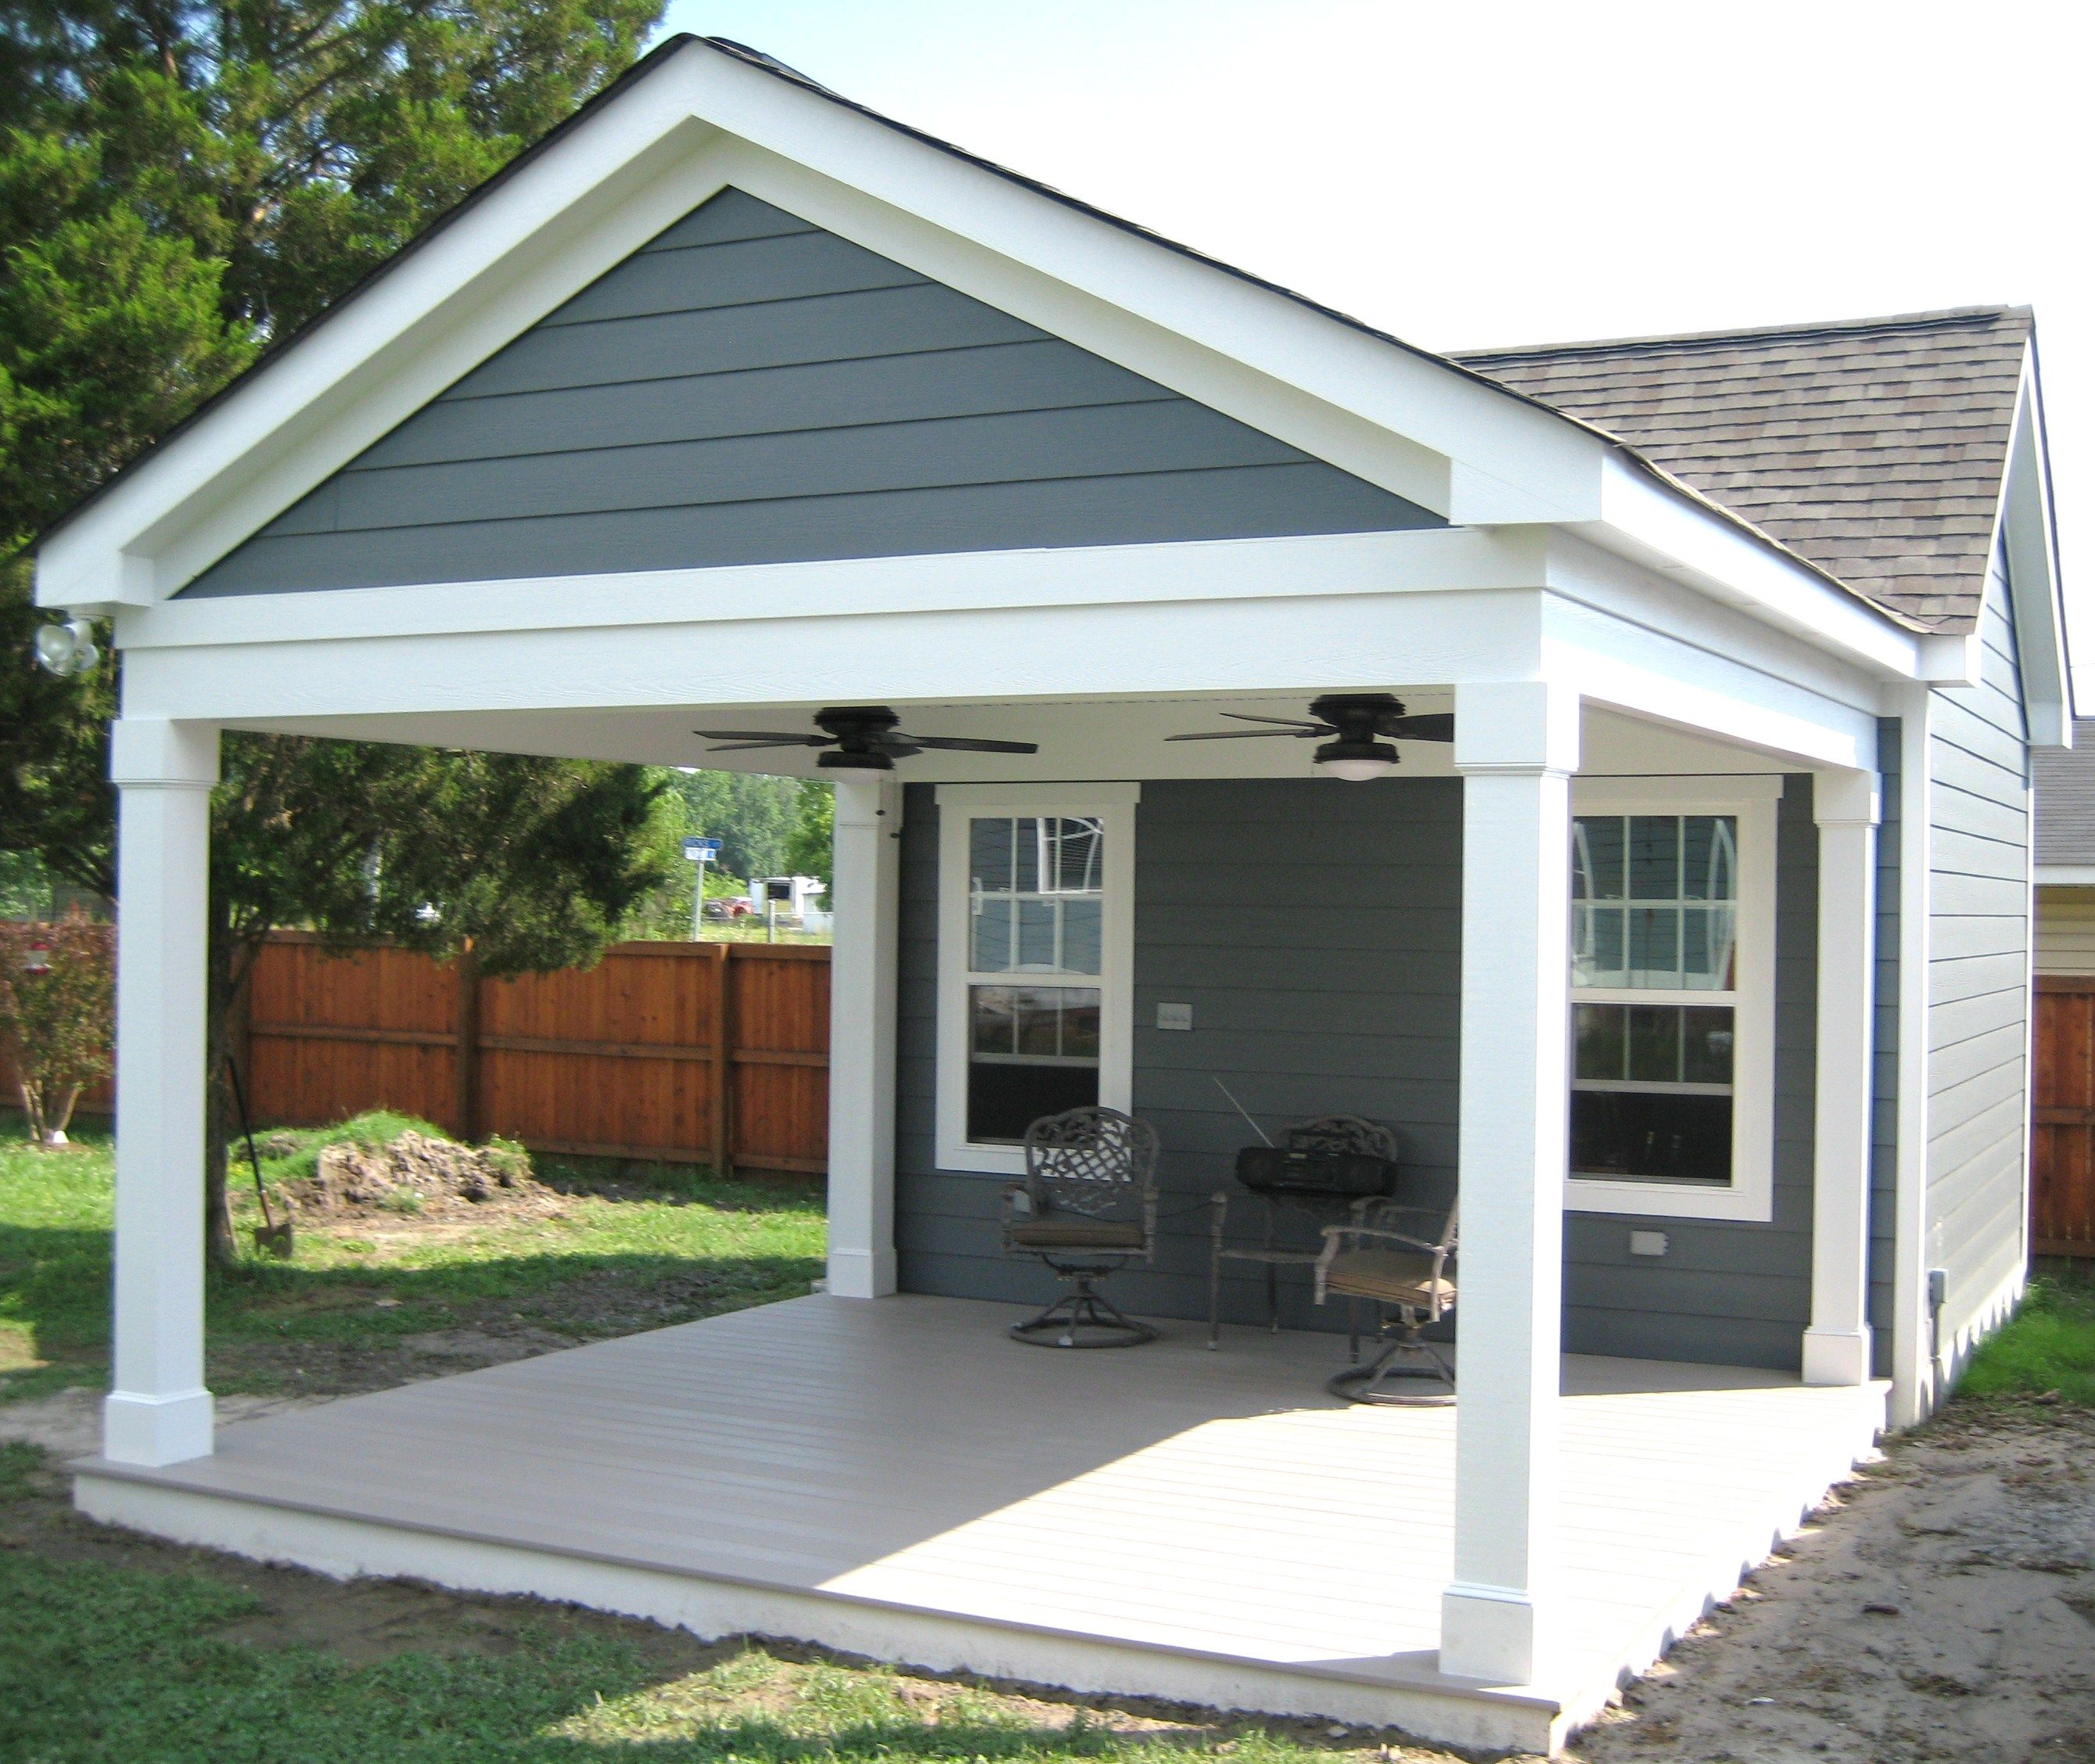 Garage With Porch Outbuilding With Covered Porch: shed with screened porch